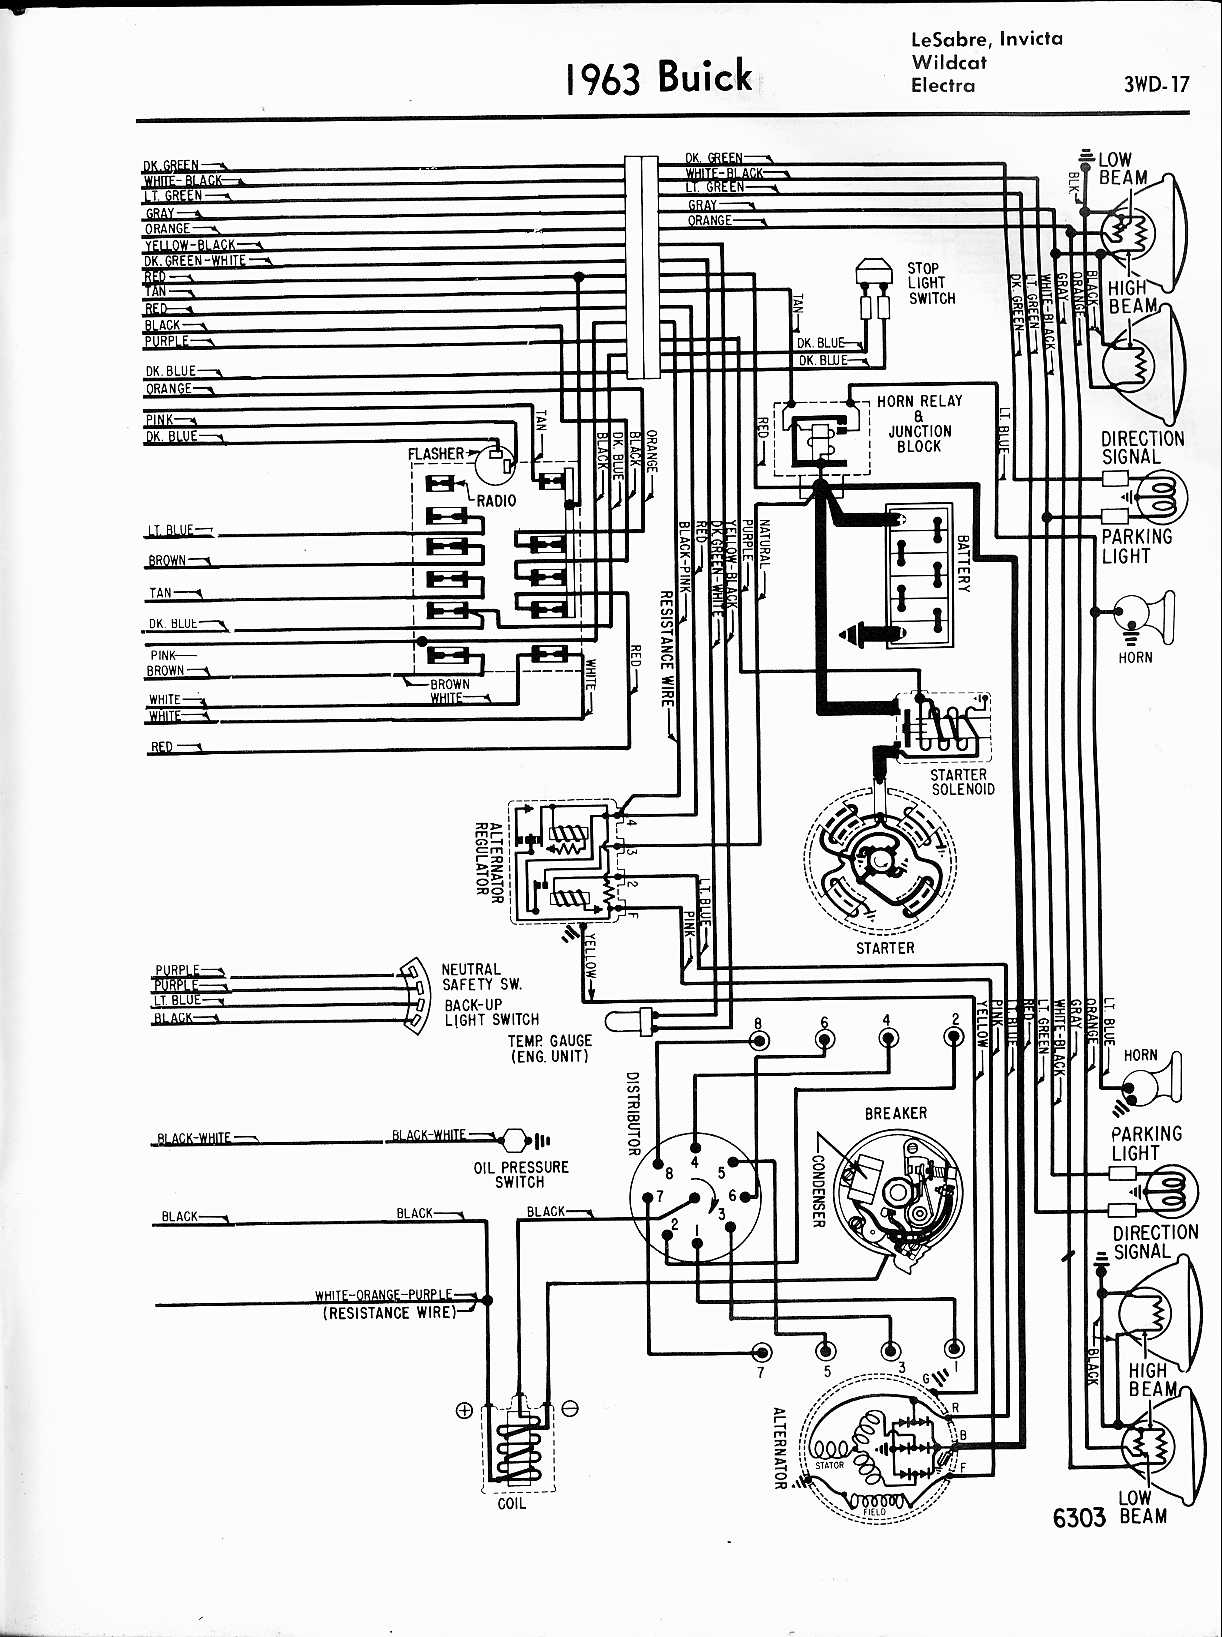 Wildcat 5th Wheel Wiring Diagram - Santa Fe 2004 Engine Diagram for Wiring  Diagram Schematics | Wildcat 5th Wheel Wiring Diagram |  | Wiring Diagram Schematics